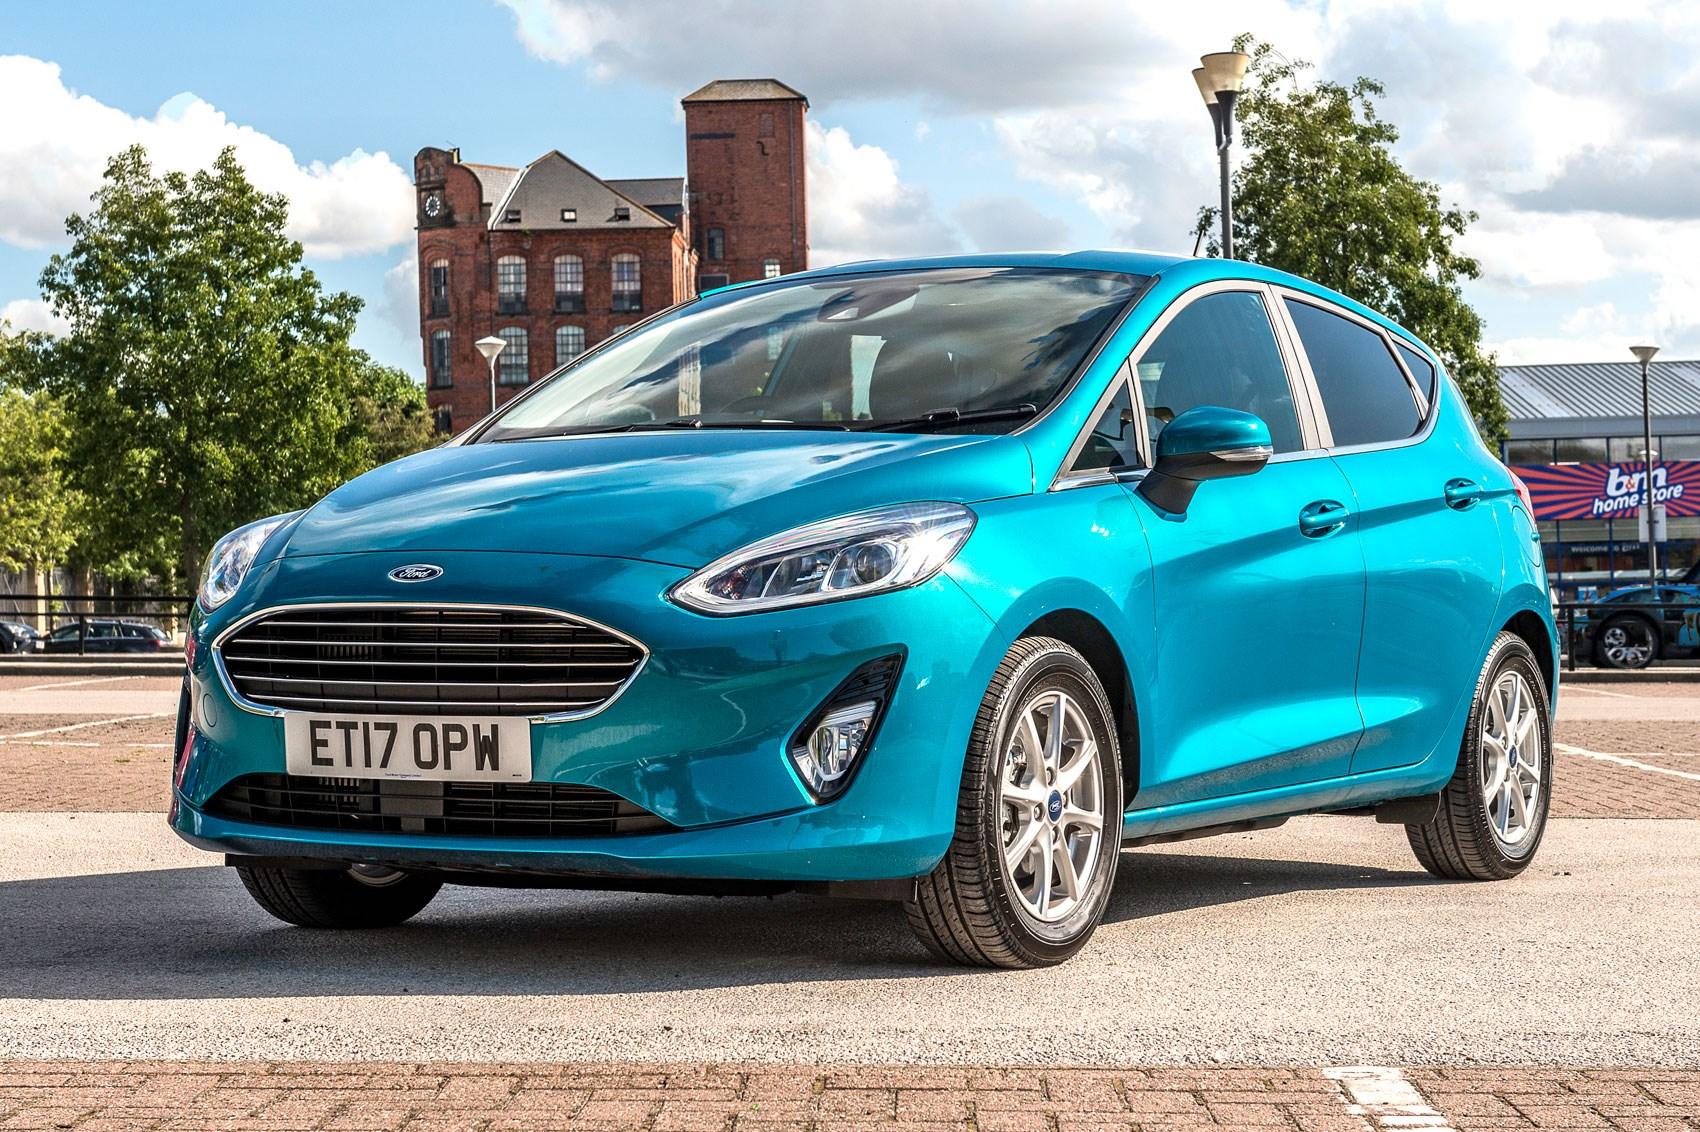 ford fiesta vs seat ibiza vs renault clio triple test 2017 review by car magazine. Black Bedroom Furniture Sets. Home Design Ideas